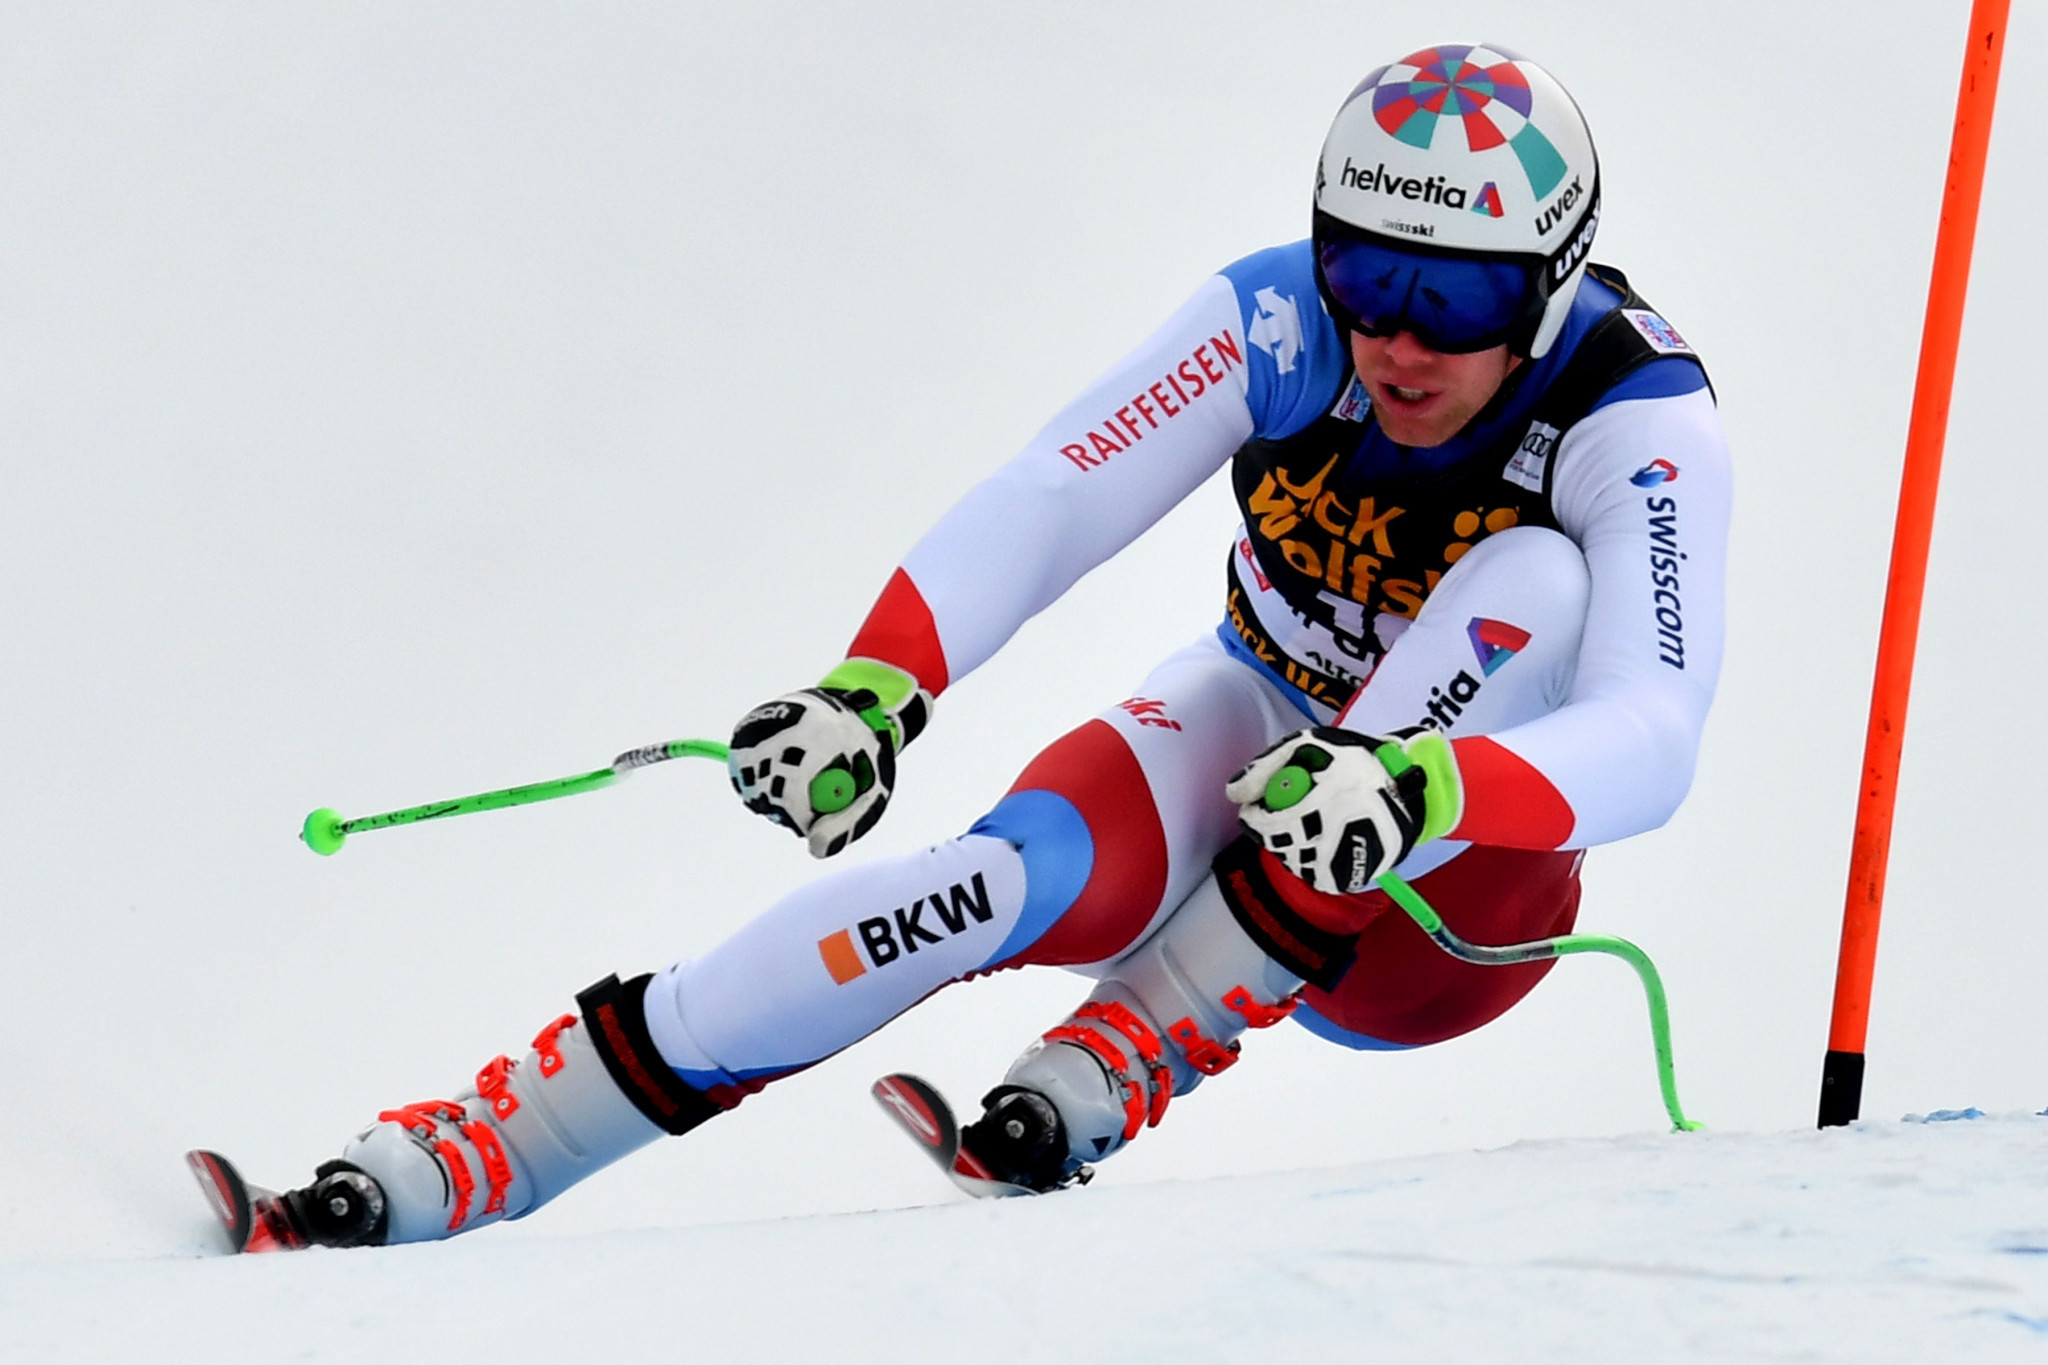 Gisin retires after failing to recover from horror crash at FIS Alpine Ski World Cup in Val Gardena